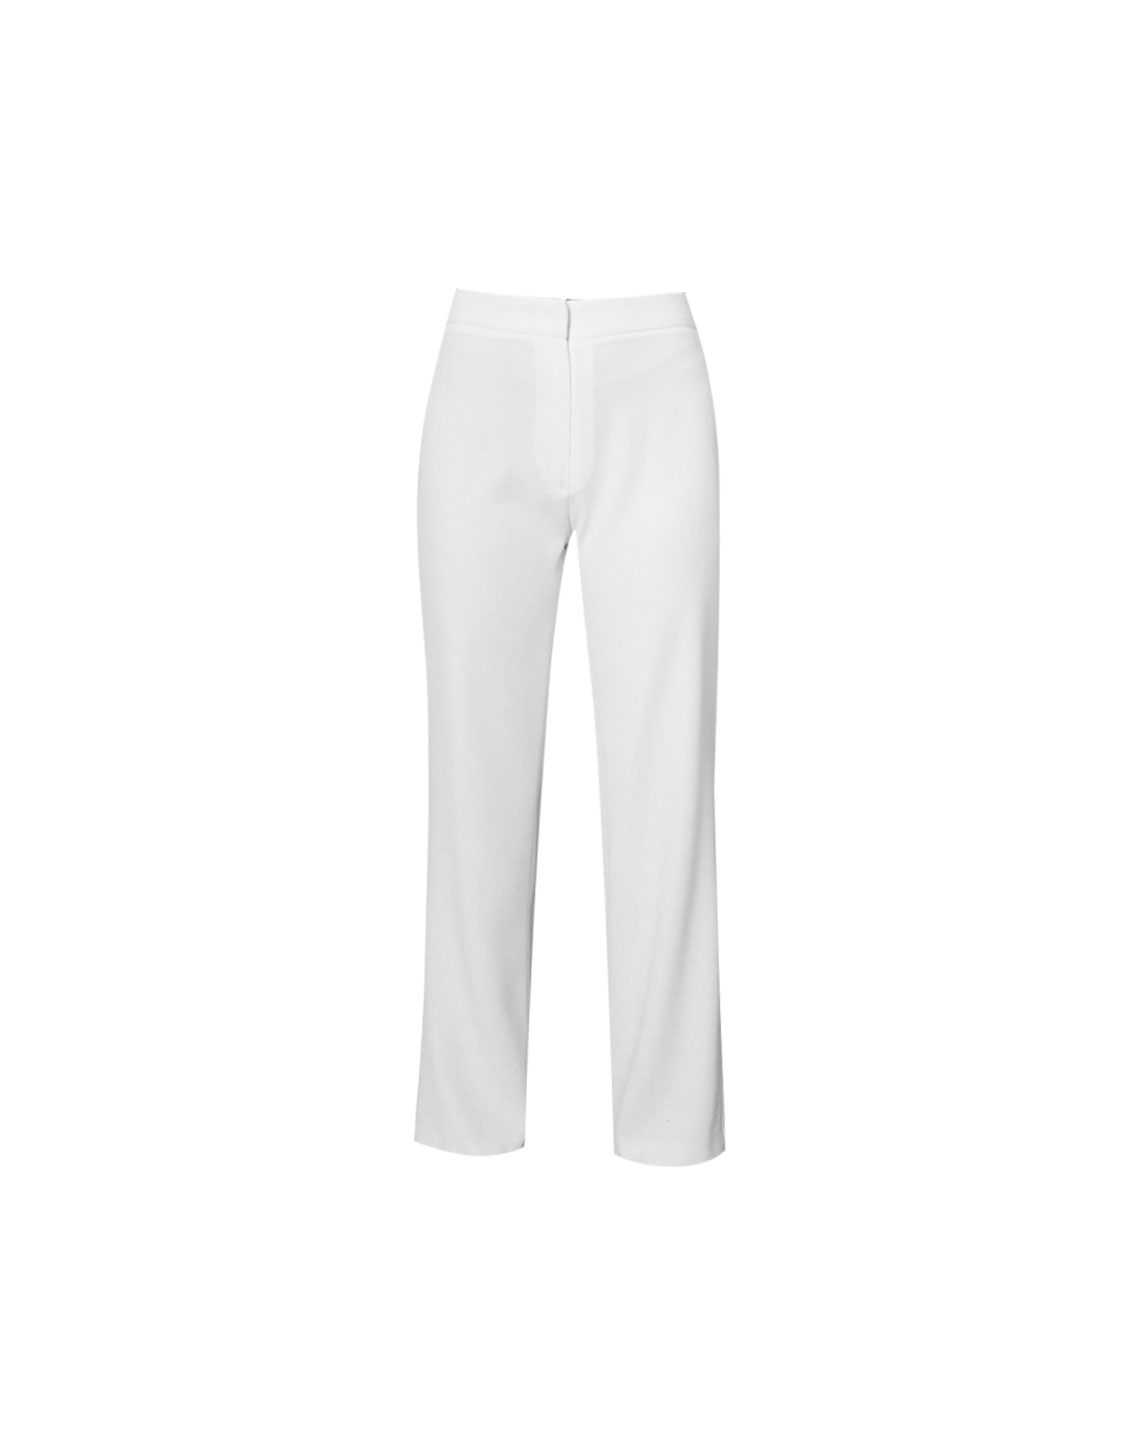 Holly Pants - White by Jessica K on curated-crowd.com